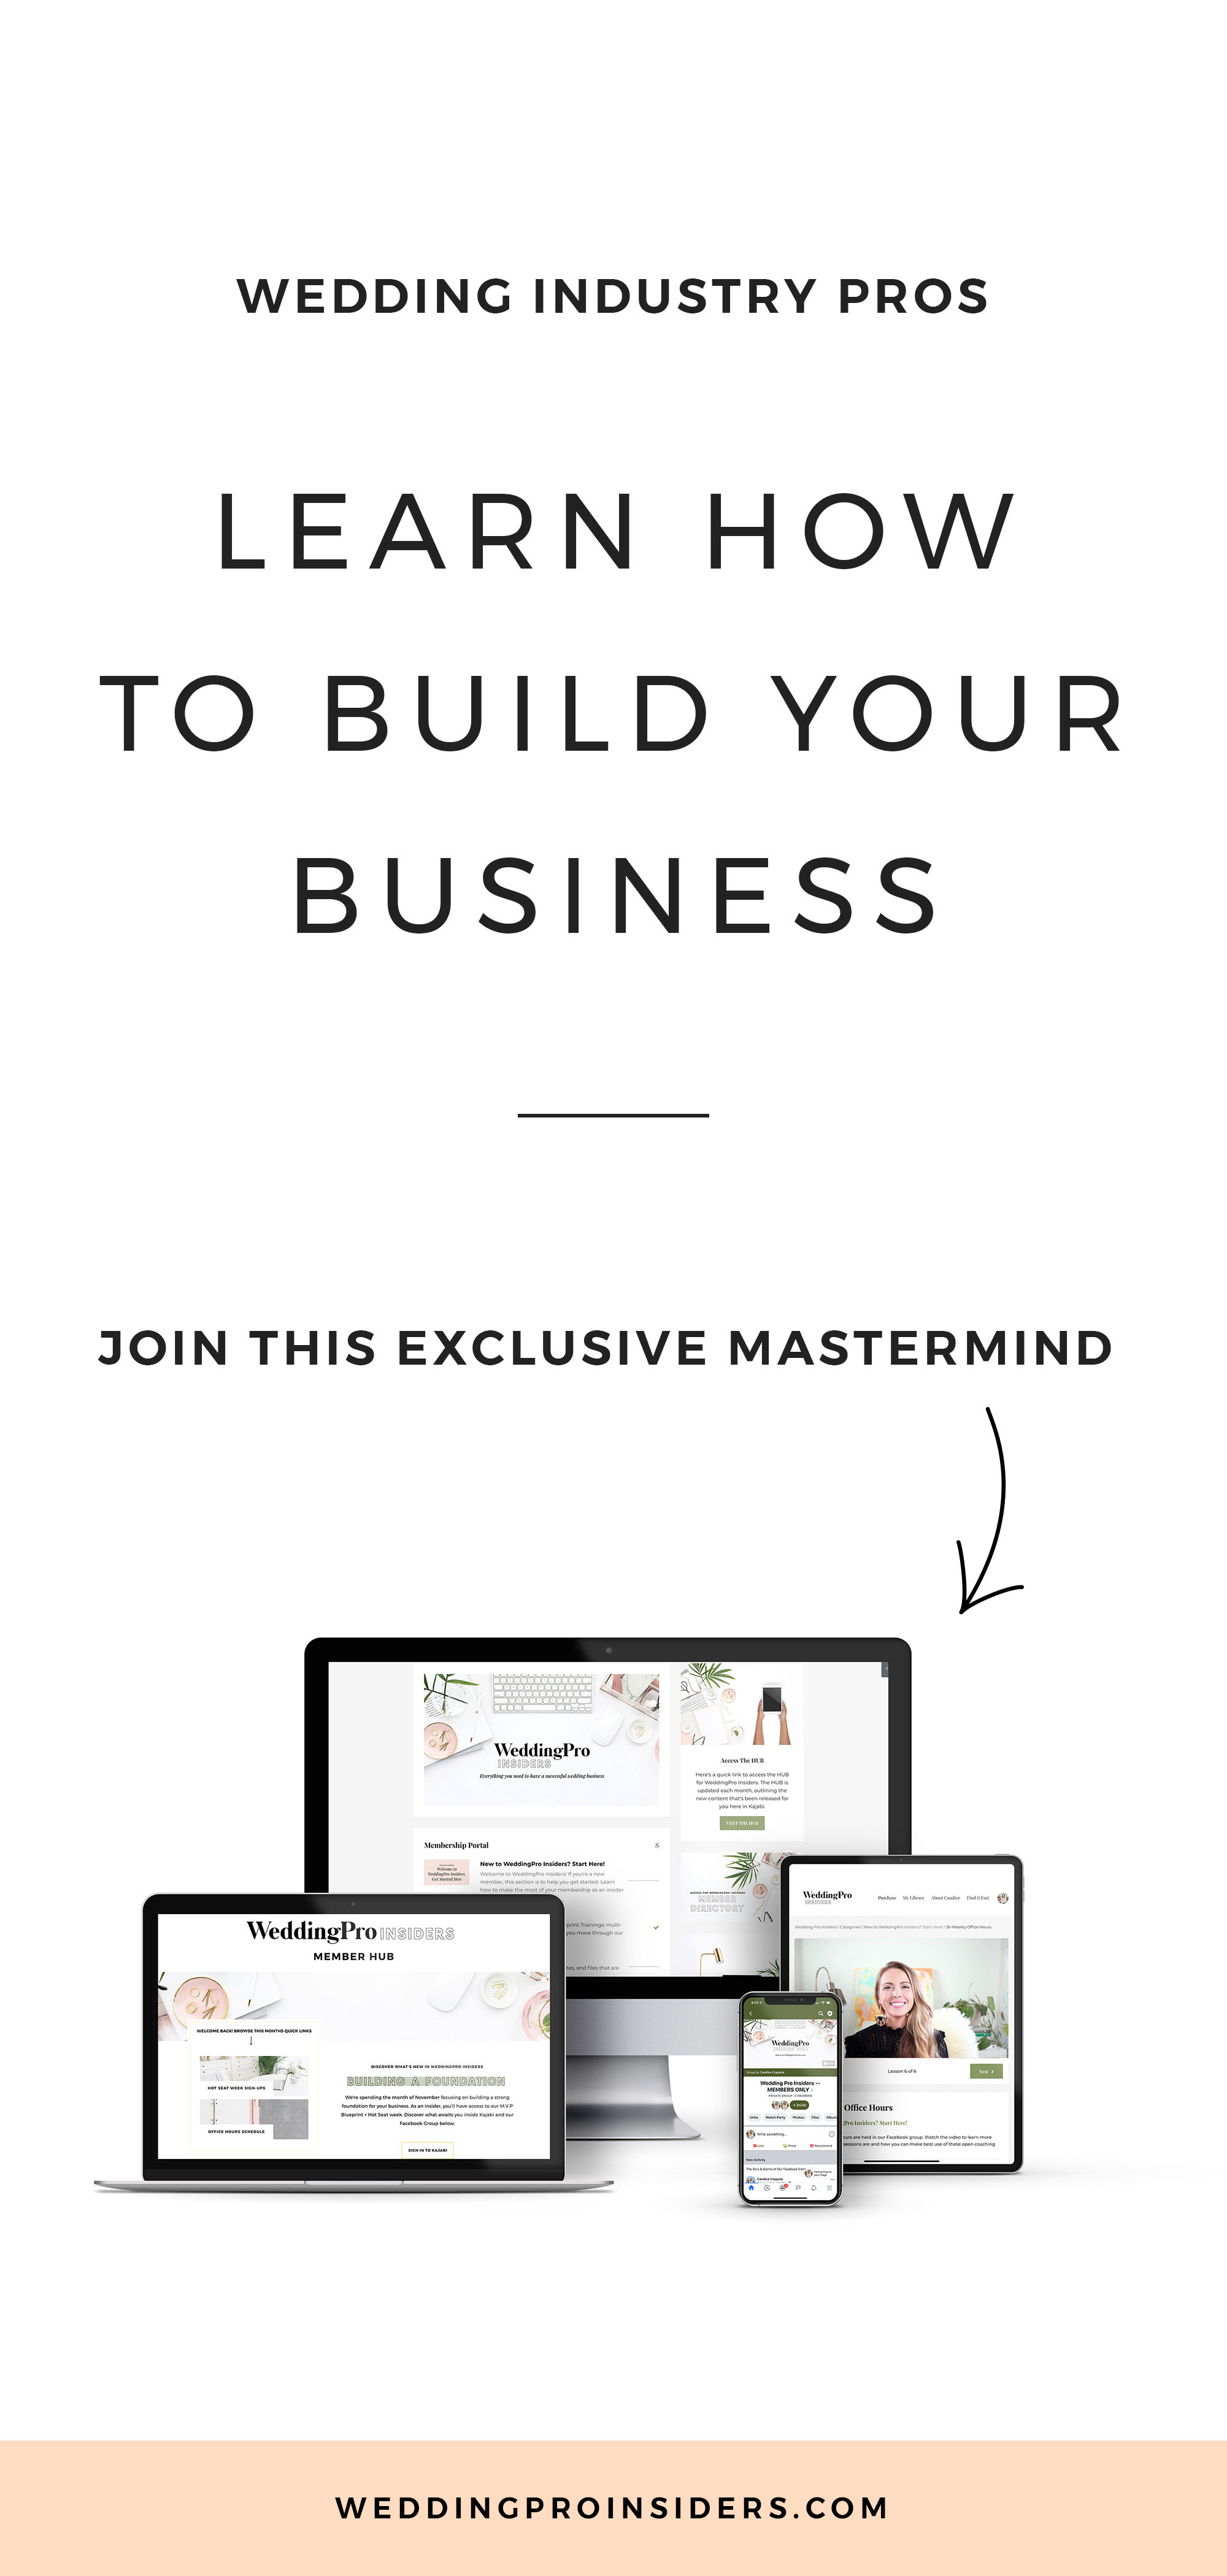 The doors to WeddingPro Insiders are officially open!  I am inviting you to join me inside my new business mastermind, helping wedding pros like YOU build the kind of business you want.  I've taken my 12 years of experience in the wedding industry to create a mastermind for wedding pros that combines everything you need to have the business you want.  ✓ Attracting the right customers? Check.  ✓ A rock-solid foundation that can withstand competition and changes in the industry? Check.  ✓ Strategies for marketing that actually WORK? Check.  ✓ Growing a team that helps your business to scale and thrive, all while supporting someone elses dream to serve others? CHECK!  ✓ Building a respected and recognized brand in the industry? Yup, that too.  ✓ Systems & processes that allow your business to work for you, even when you're not there? Sounds like a dream, right? It's not.  ✓ More freedom, more money and more creativity in your business? YES!  If you've been thinking about making a change in your business and you know you need to do things differently, then it might be time to invest in a mastermind program that can teach you business strategies and push you outside of your comfort zone to take action.  Are you ready to build the kind of business YOU want?  WeddingPro Insiders is an exclusive monthly mastermind just for wedding pros who want to take action and build a profitable business with purpose.  WeddingPro Insiders is your answer to building the kind of business YOU want.  Every month, WeddingPro Insiders gain the knowledge on how to take action and build a better business with coaching, proven business strategies and done-for-you content.